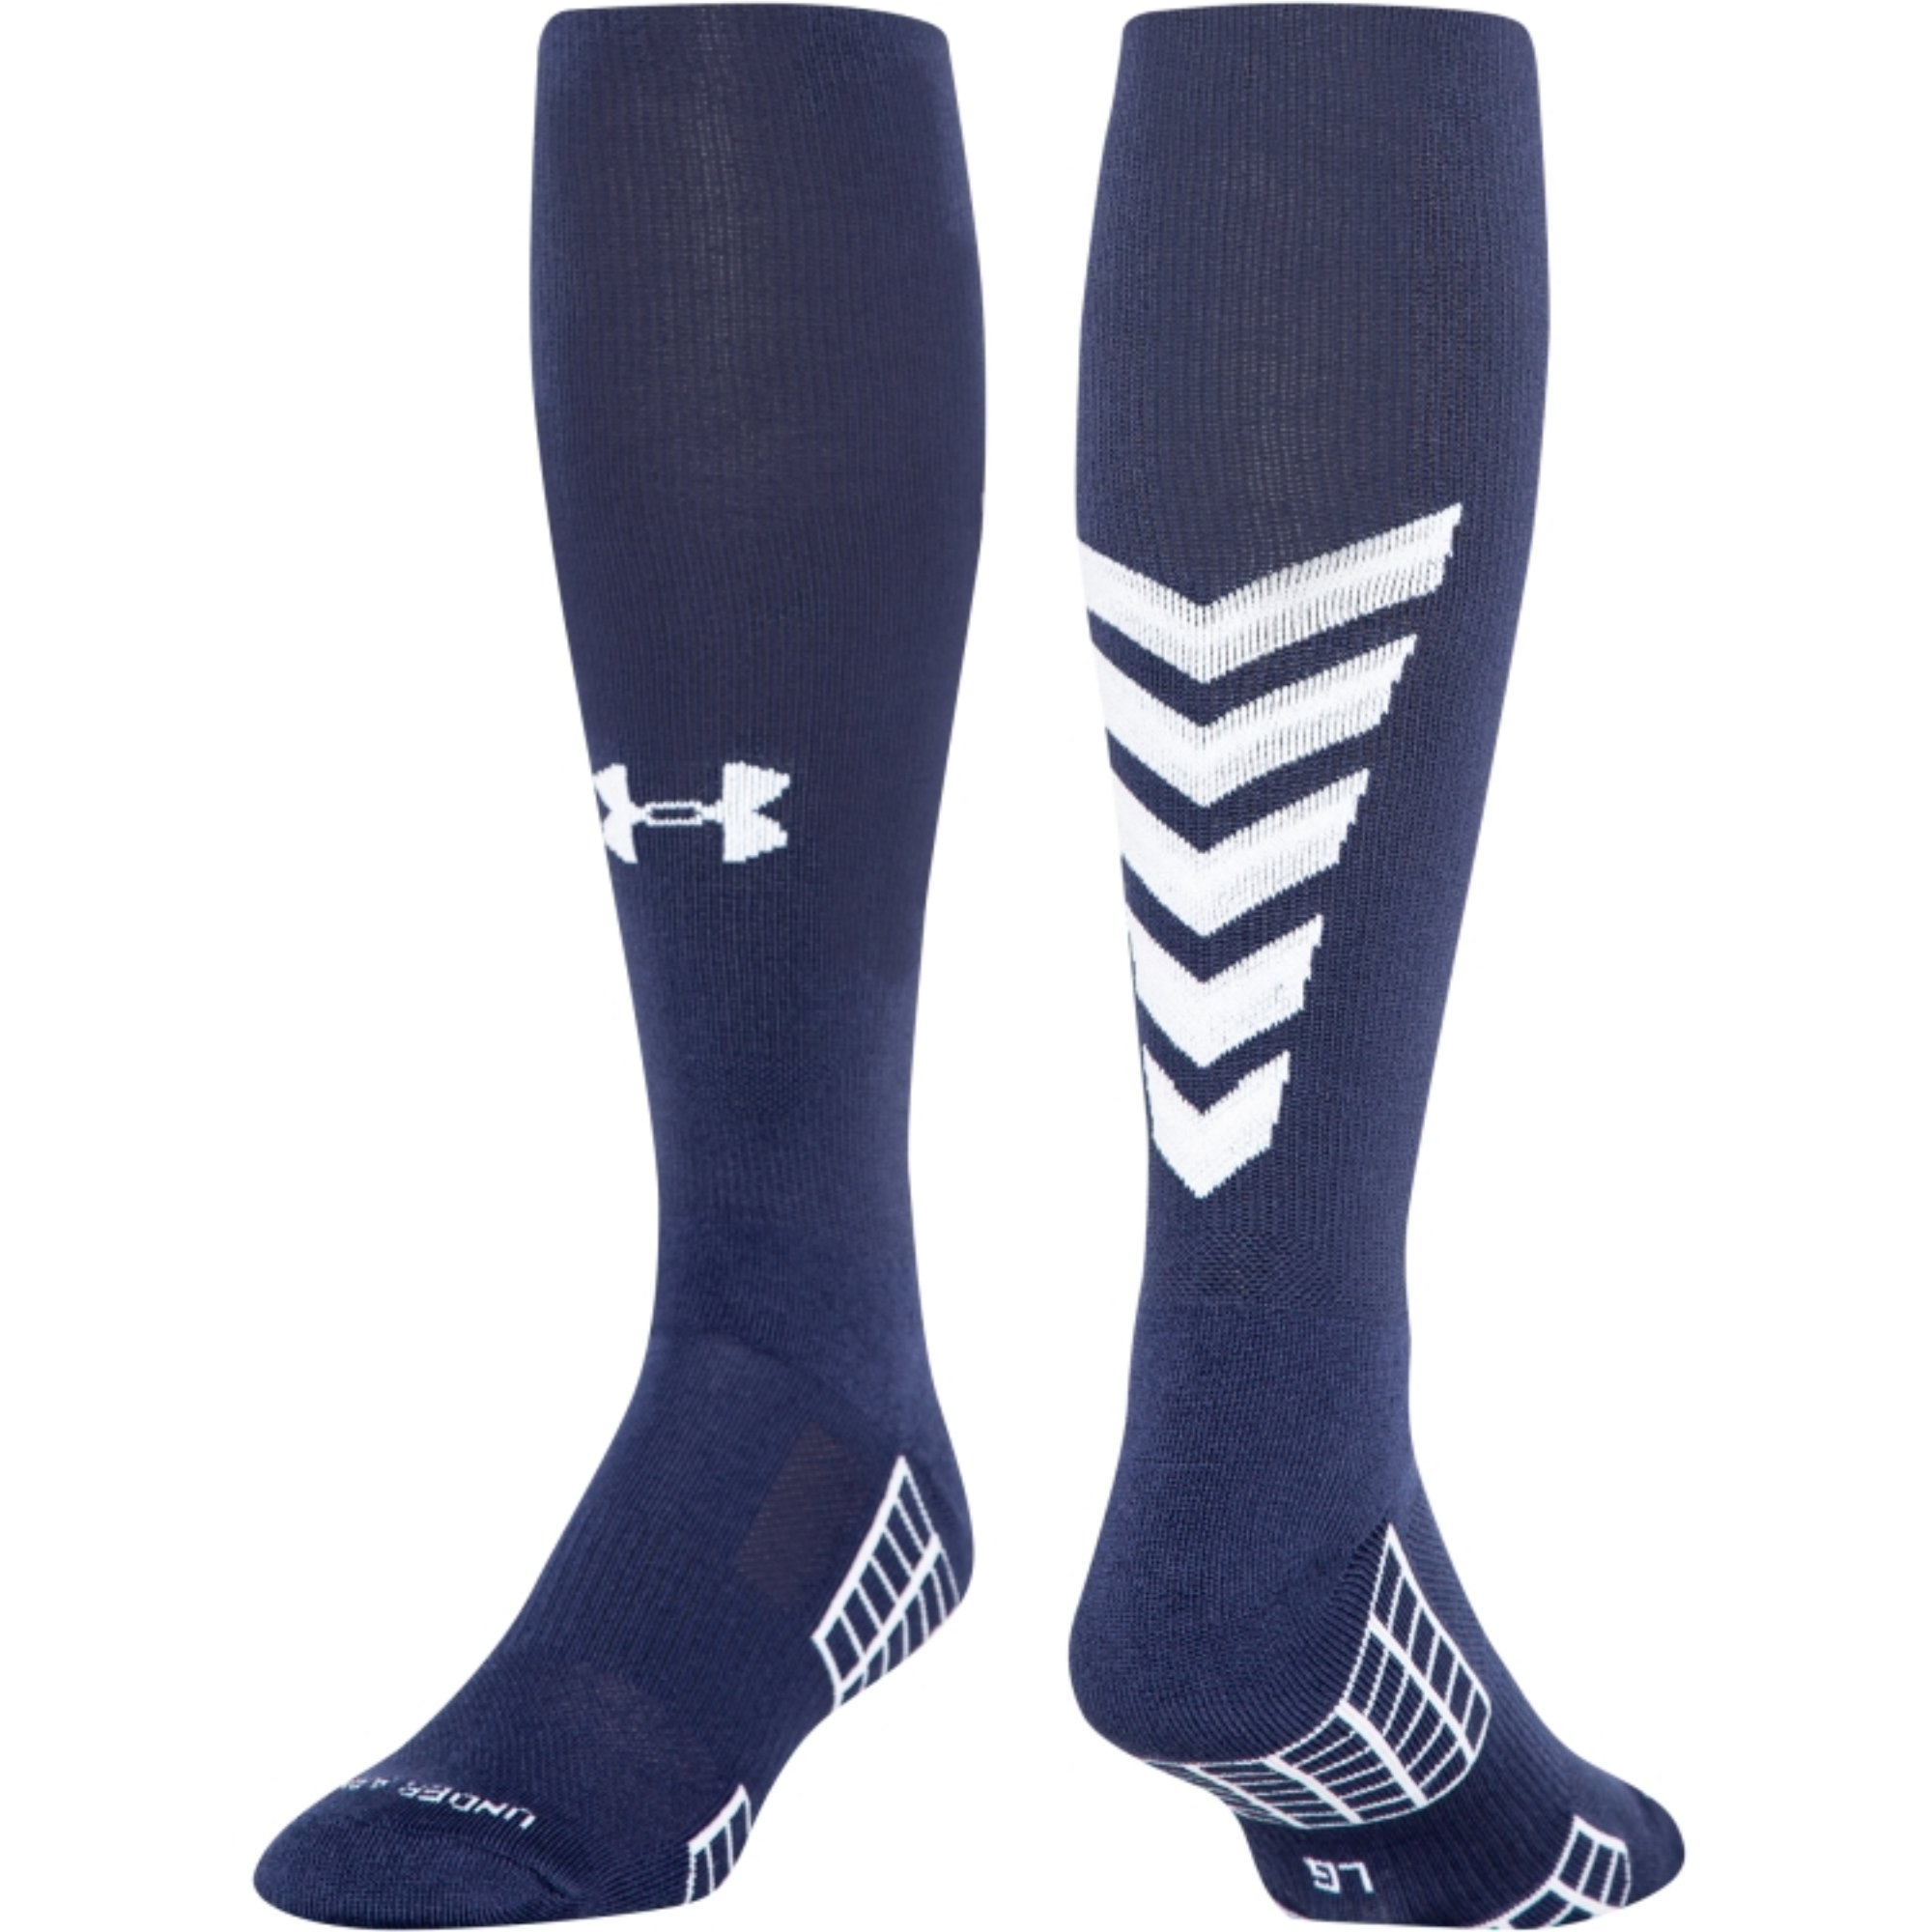 adidas soccer compression socks